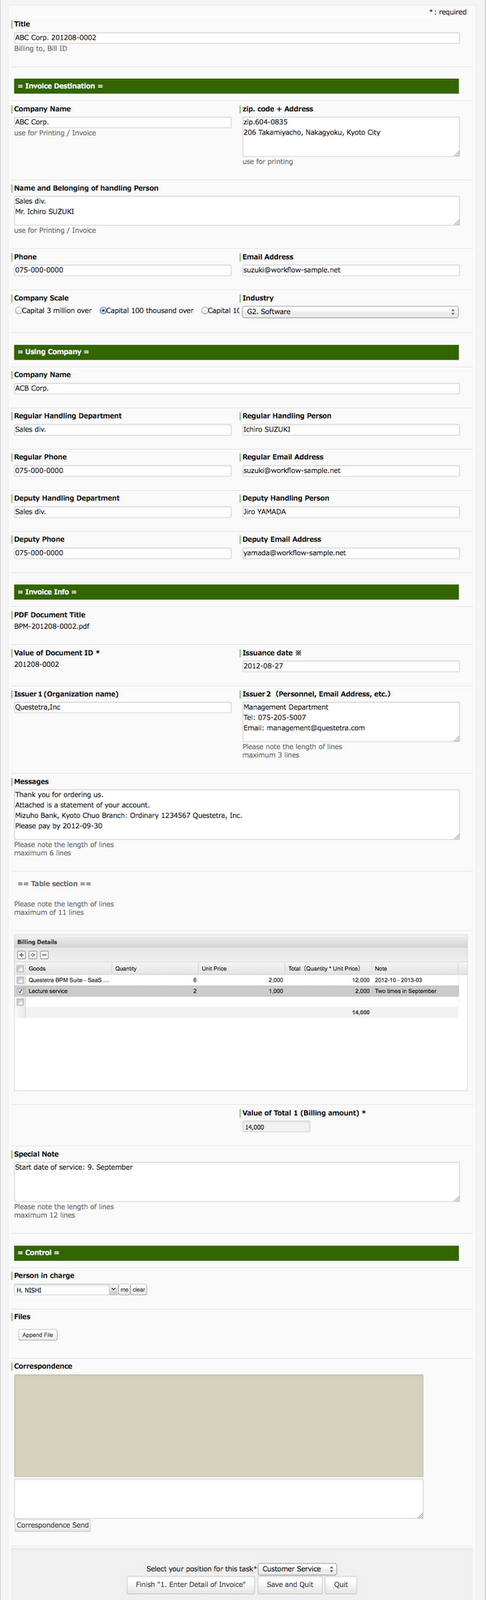 workflow sample automate creating pdf invoice labour saving on data input thoroughly